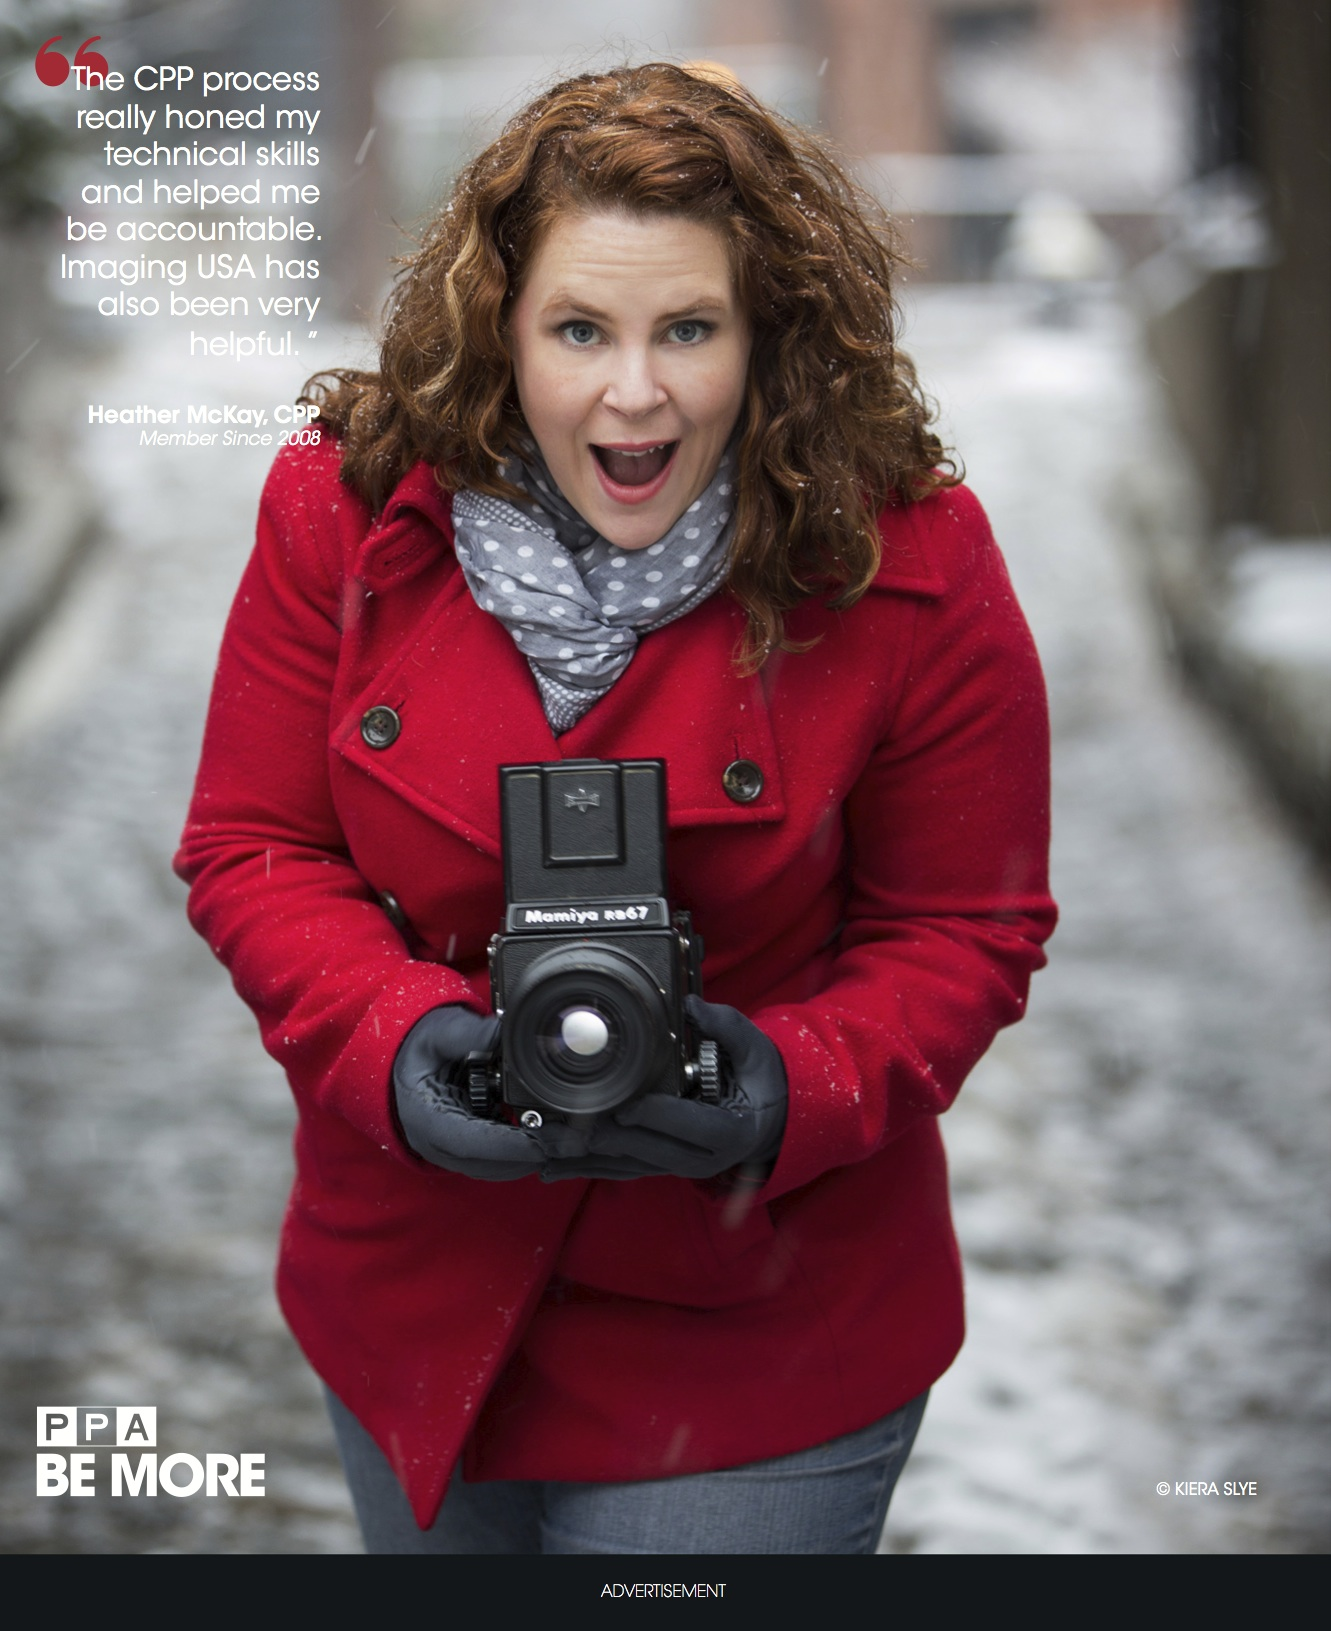 faces of PPA campaign in Professional Photographer Magazine